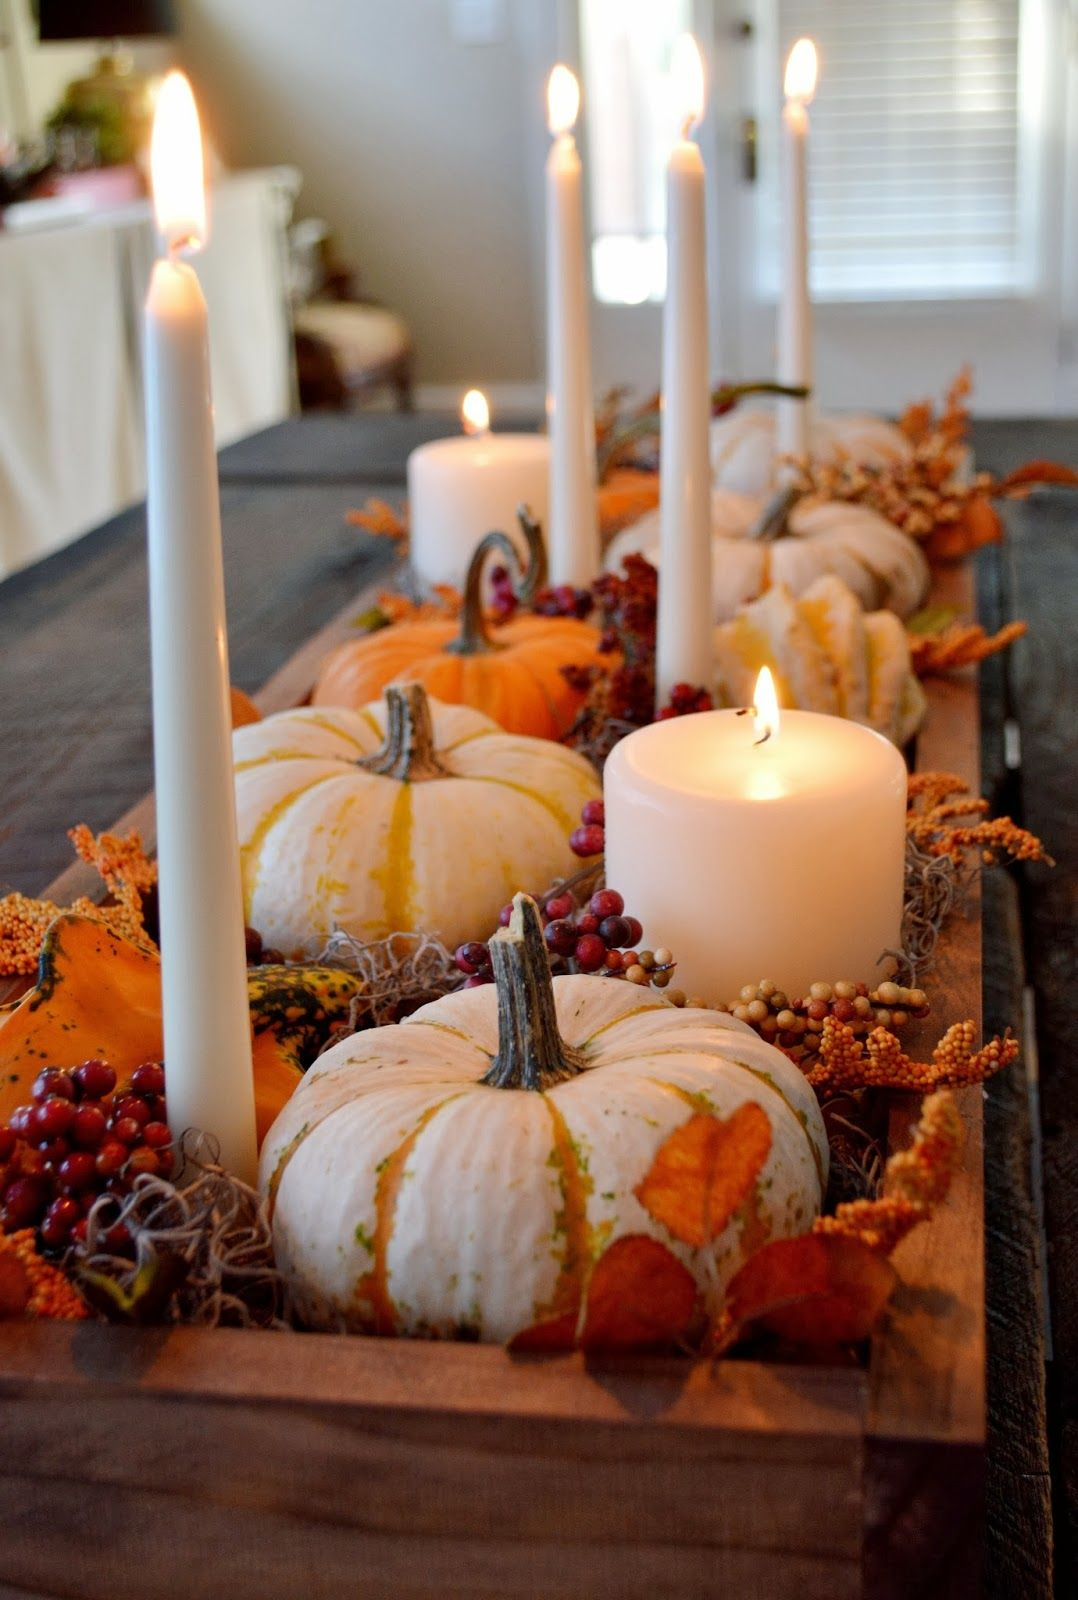 724 South House | Dressing Up Your Table for Fall | Fall Décor | Fall Tablescape | Autumn | Candles #thanksgivingdinnertable